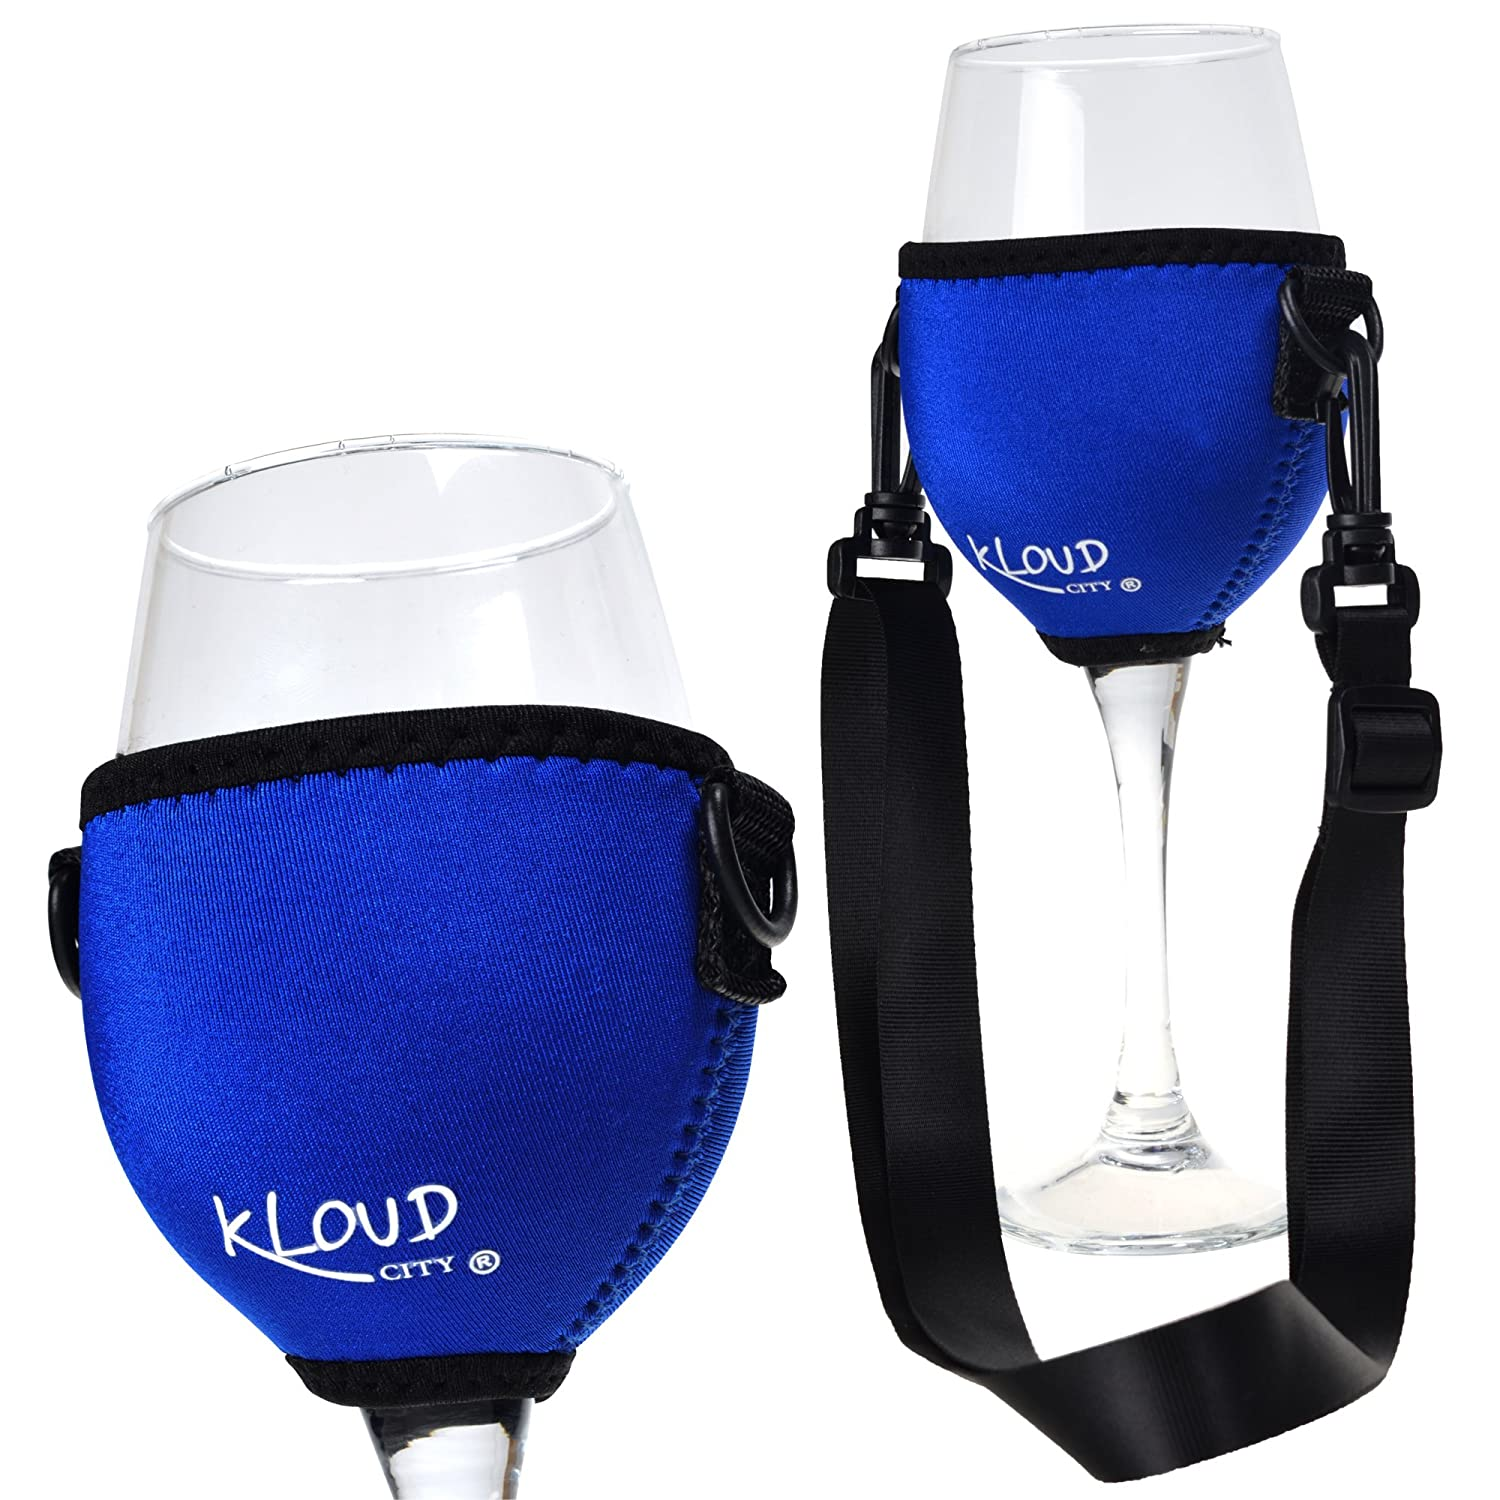 Blue Beautyflier Assorted Colors Wine Glass Insulator//Drink Holder//Neoprene Sleeve with Adjustable Neck Strap For Conference Cocktail Reception